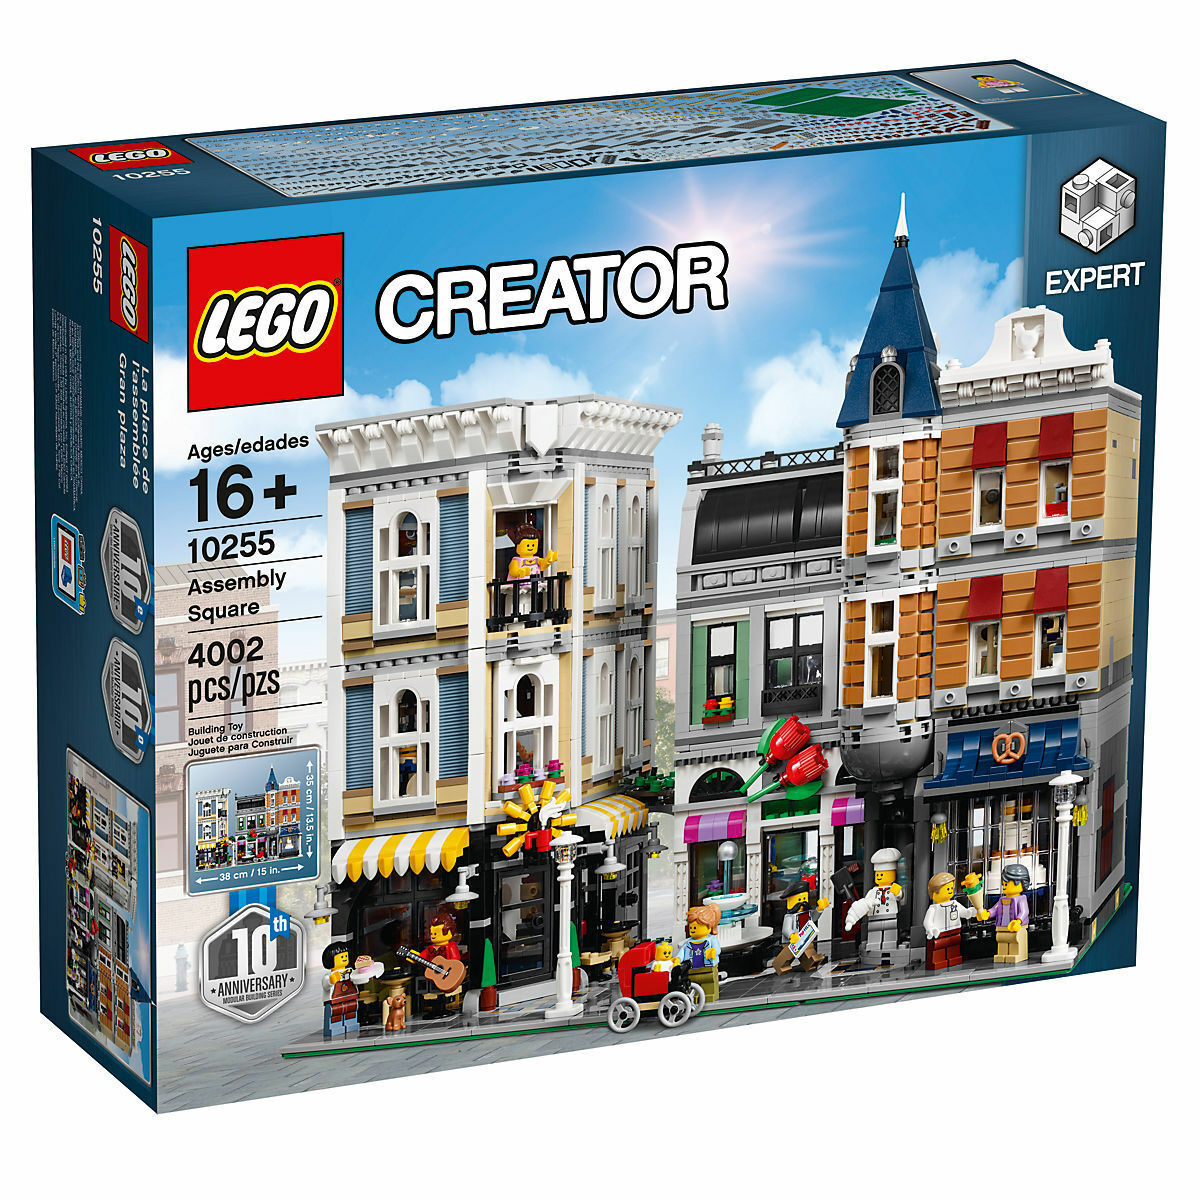 NEW LEGO Creator Assembly Square SET 10255 - 4000+ PIECES